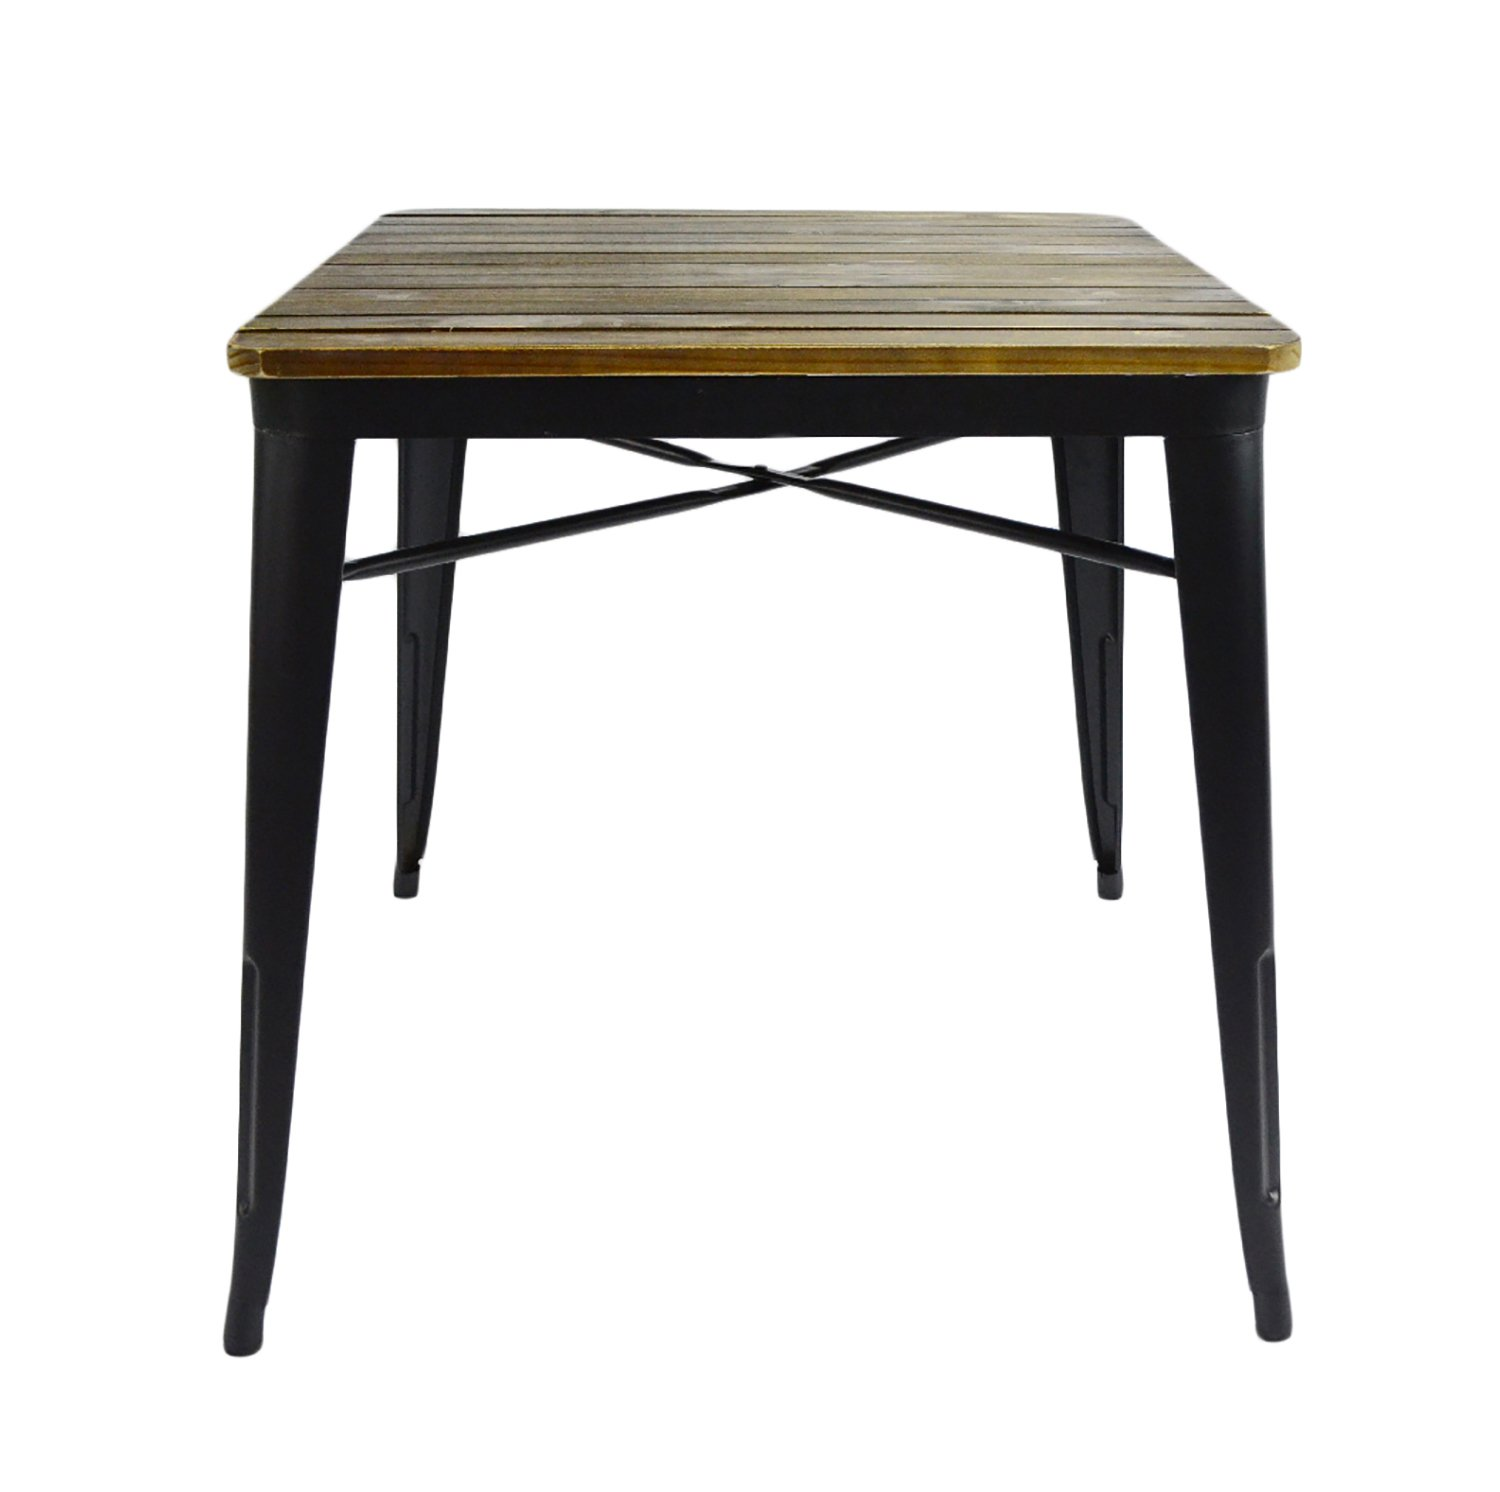 Amazon.com: VILAVITA Square Pine Wood Dining Table, Wooden Dining Furniture,  27.56 By 27.56 Inch, Retro Finish: Kitchen U0026 Dining